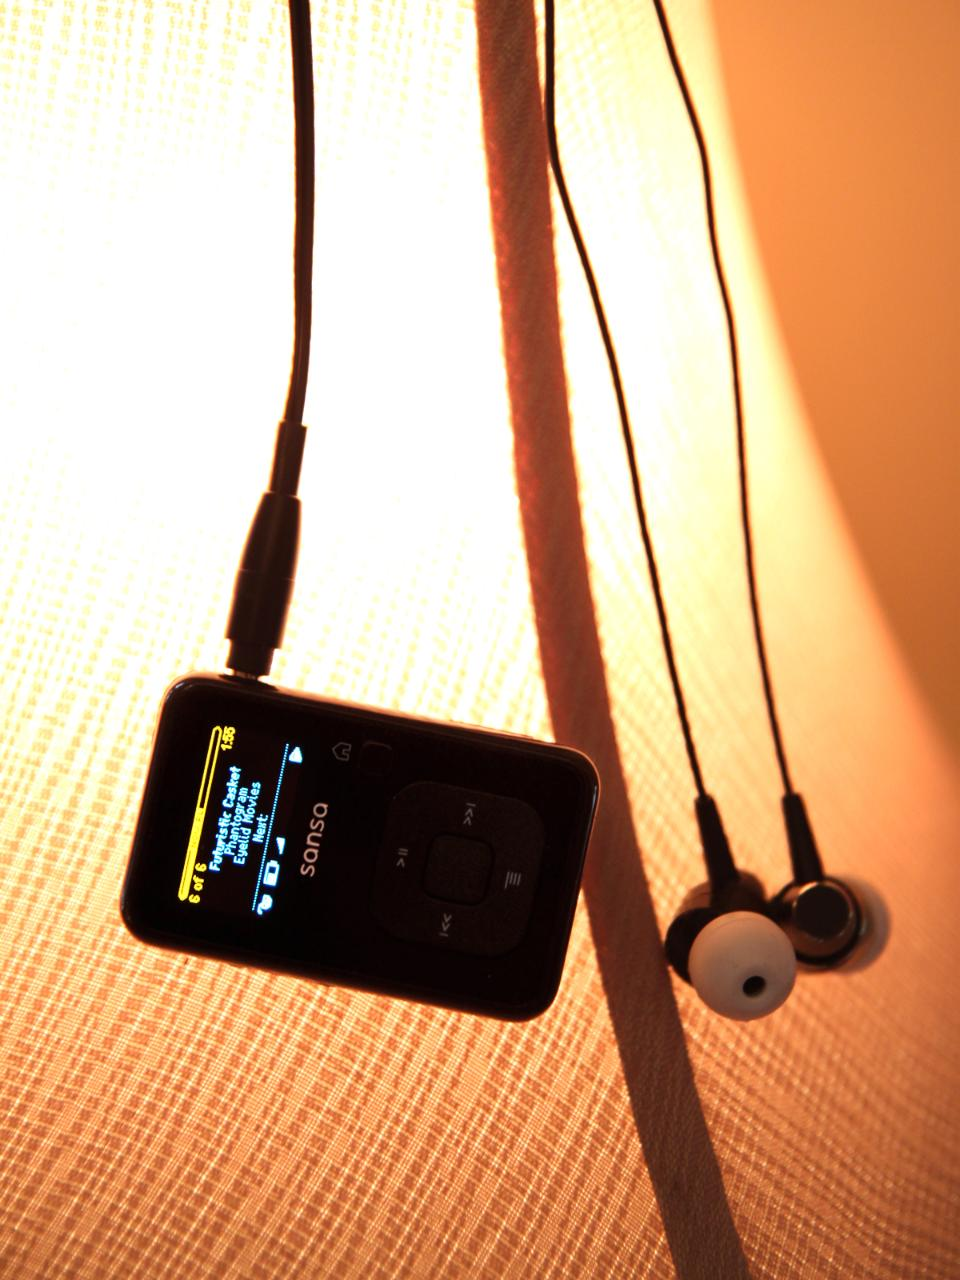 Sansa Clip+ with Denon AH-C710